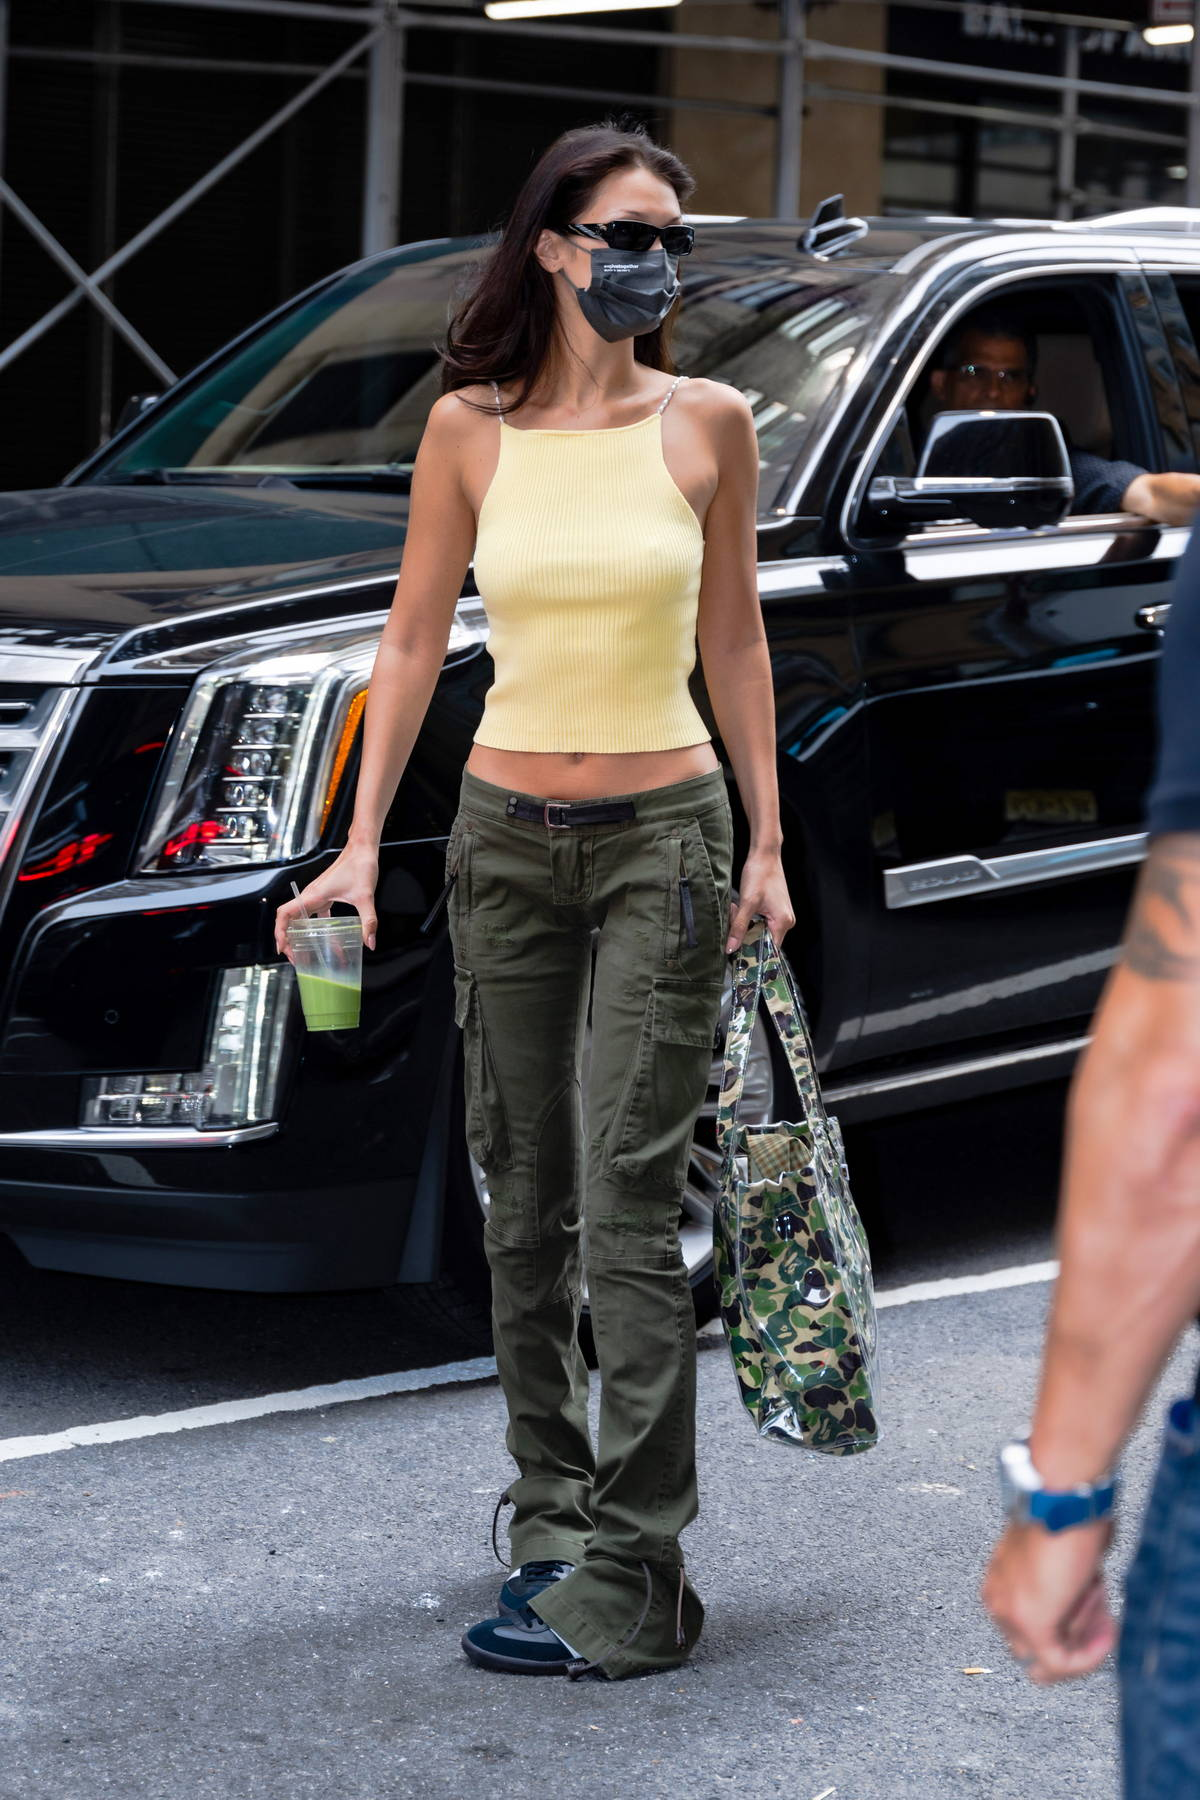 Bella Hadid looks stylish as she heads to a photoshoot for Michael Kors at The Skylark event space in New York City